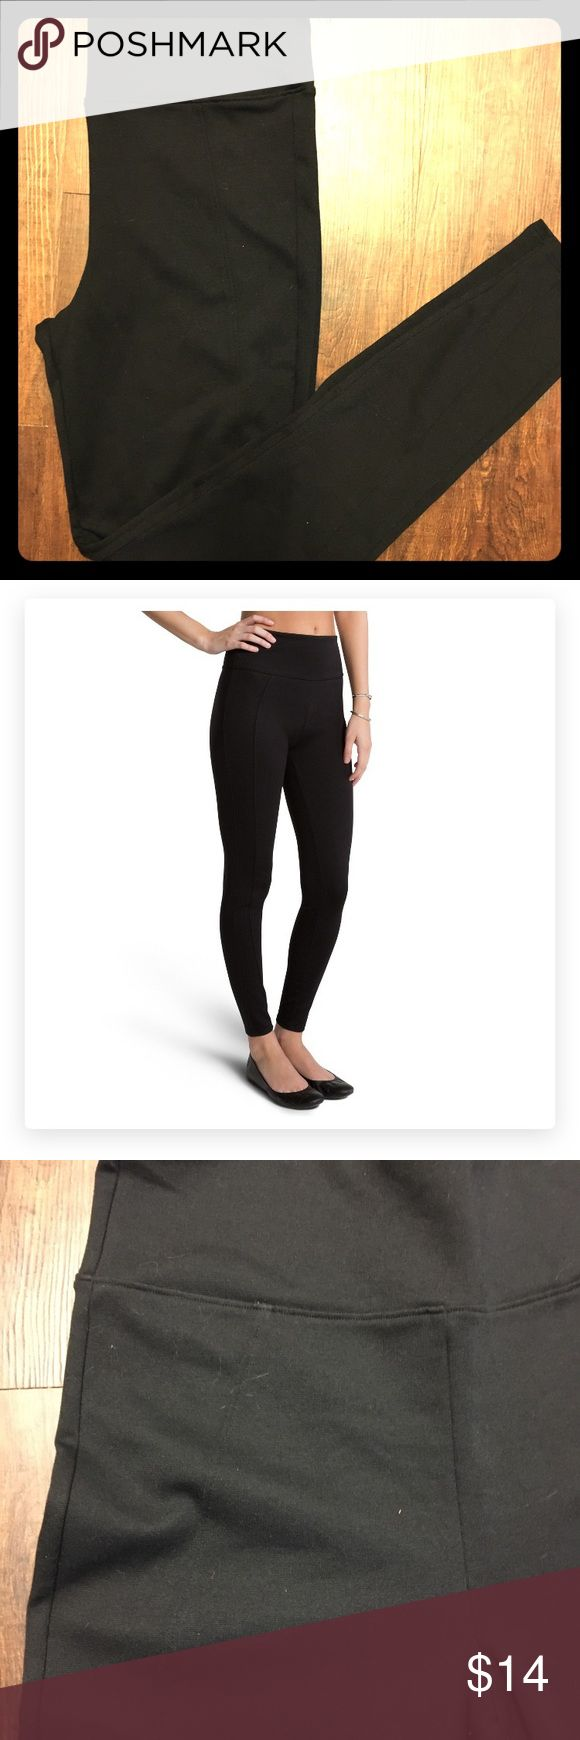 Assets Ponte Leggings Assets by Spanx, black ponte leggings. Fitted and really hold you in. Full coverage, can't see through them! Never worn, only tried on. Assets By Spanx Pants Leggings